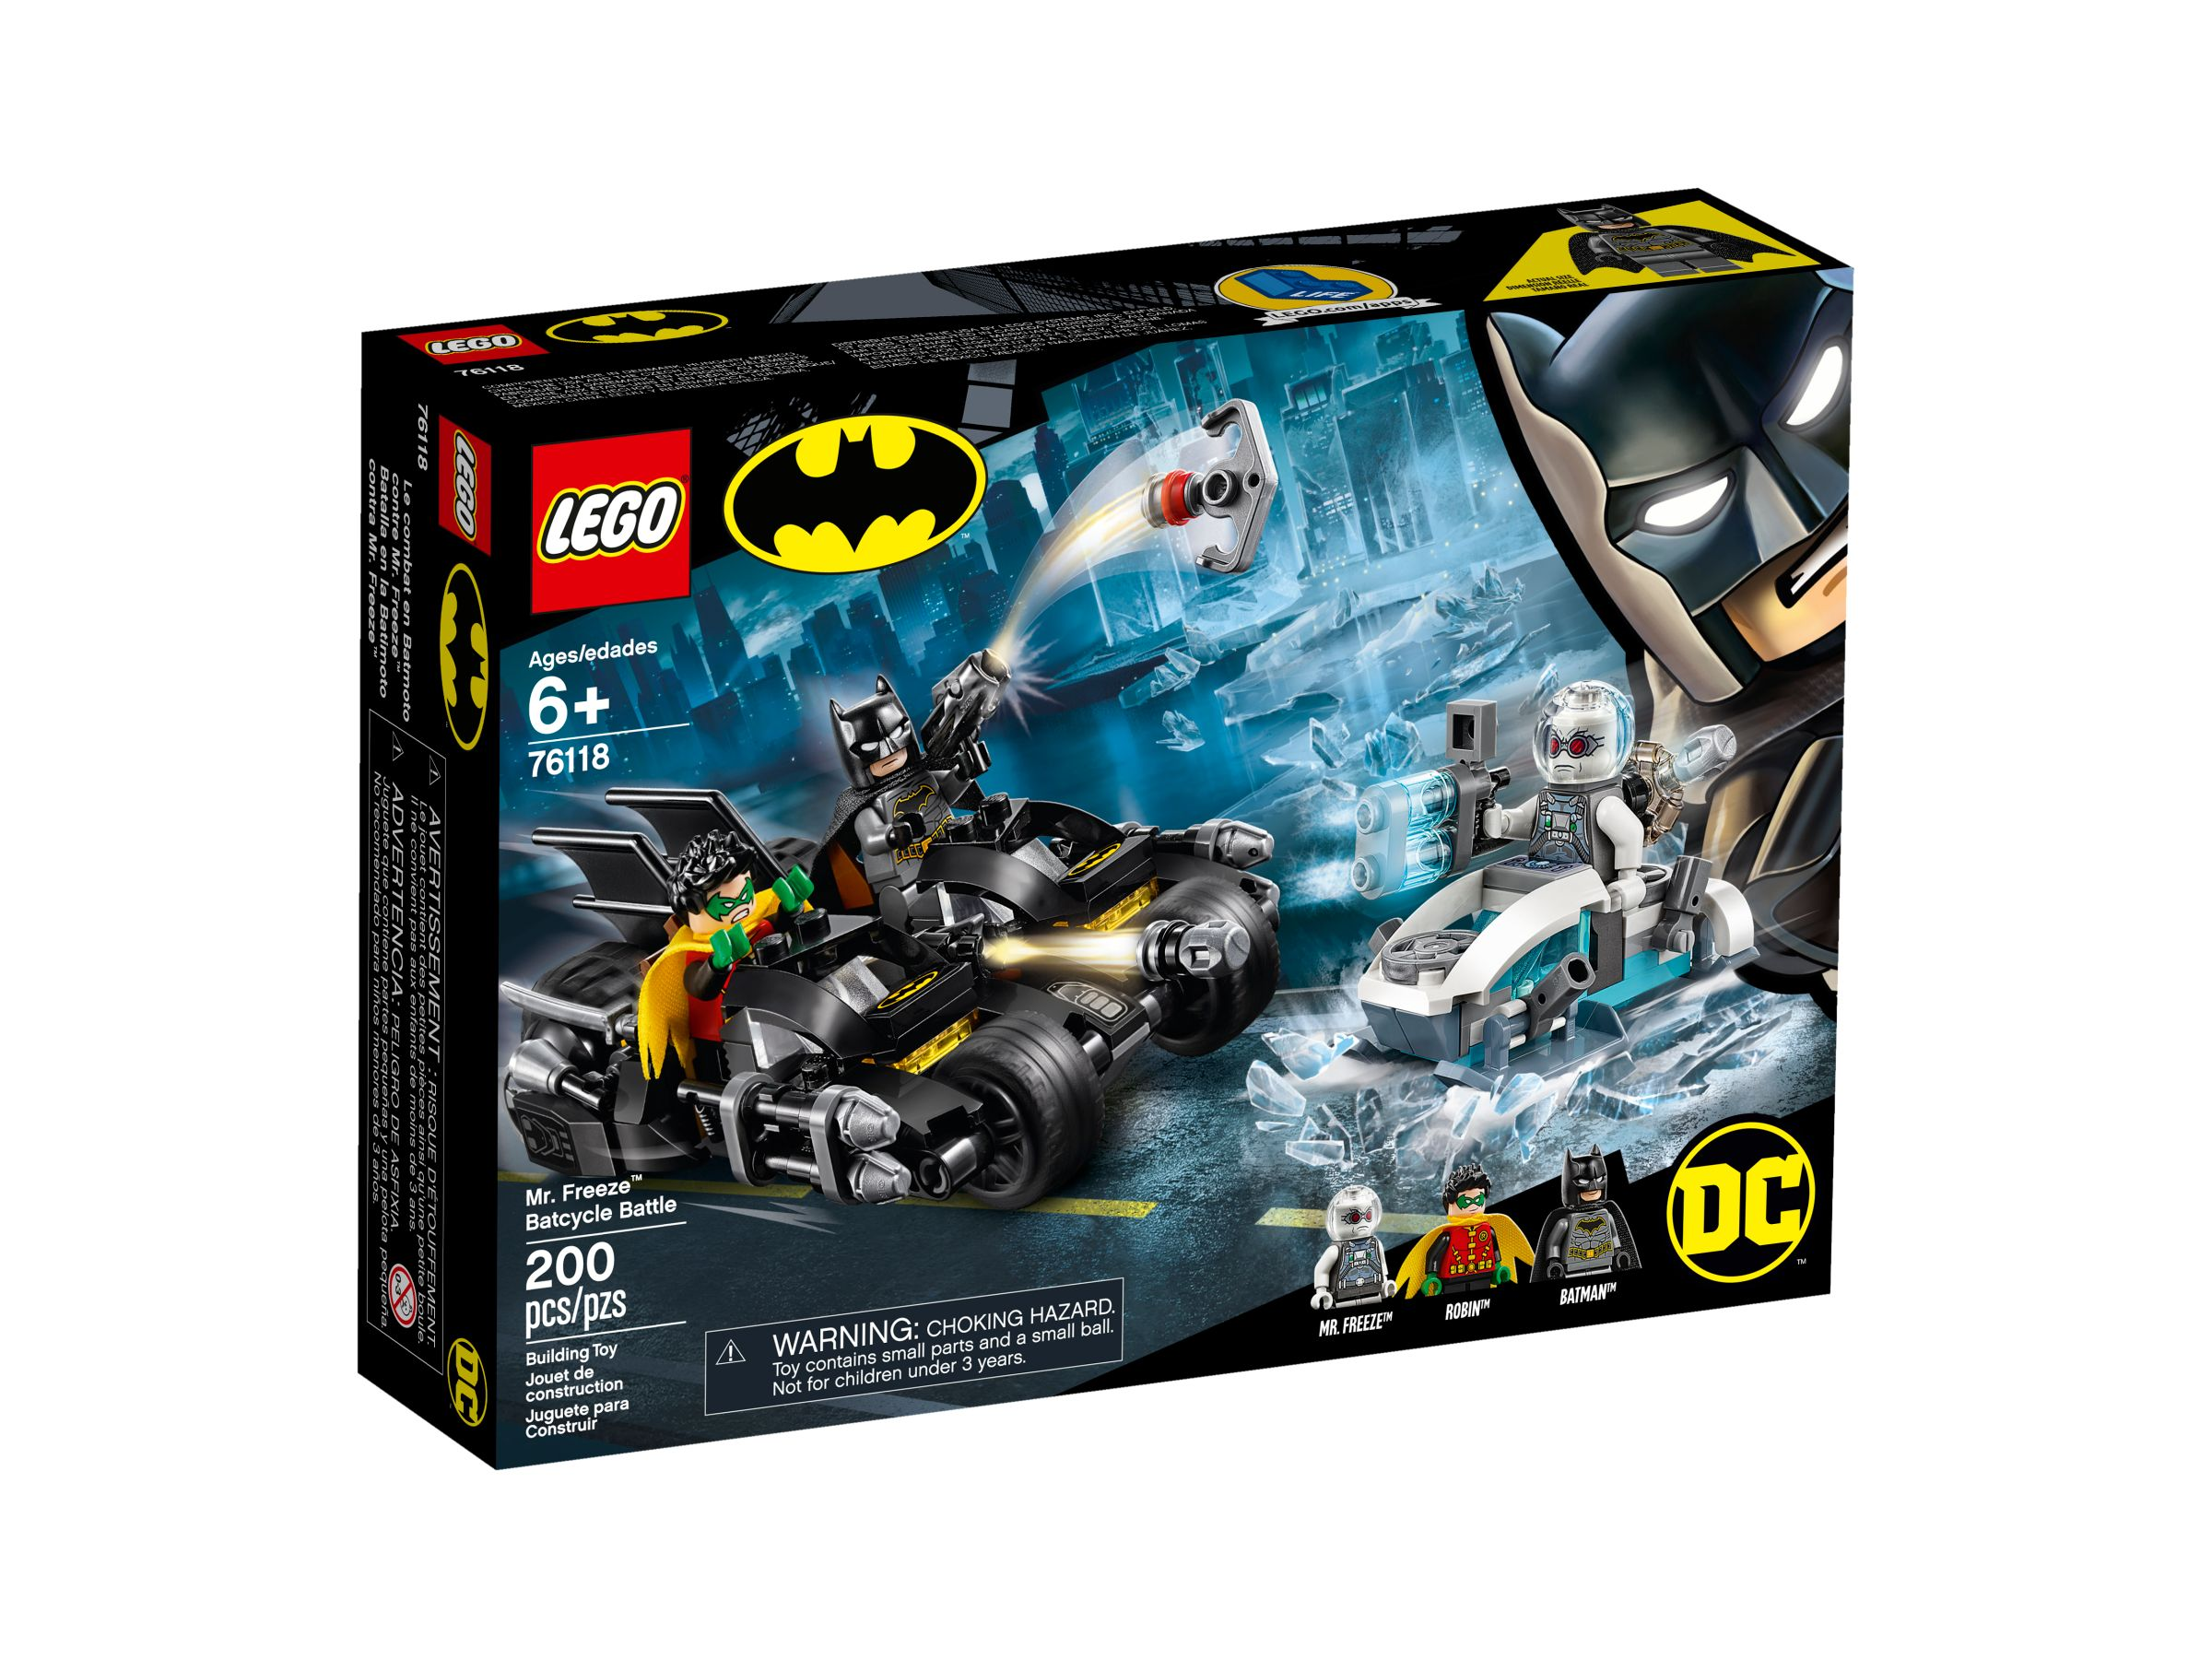 LEGO Super Heroes 76118 Batcycle-Duell mit Mr. Freeze™ LEGO_76118_alt1.jpg